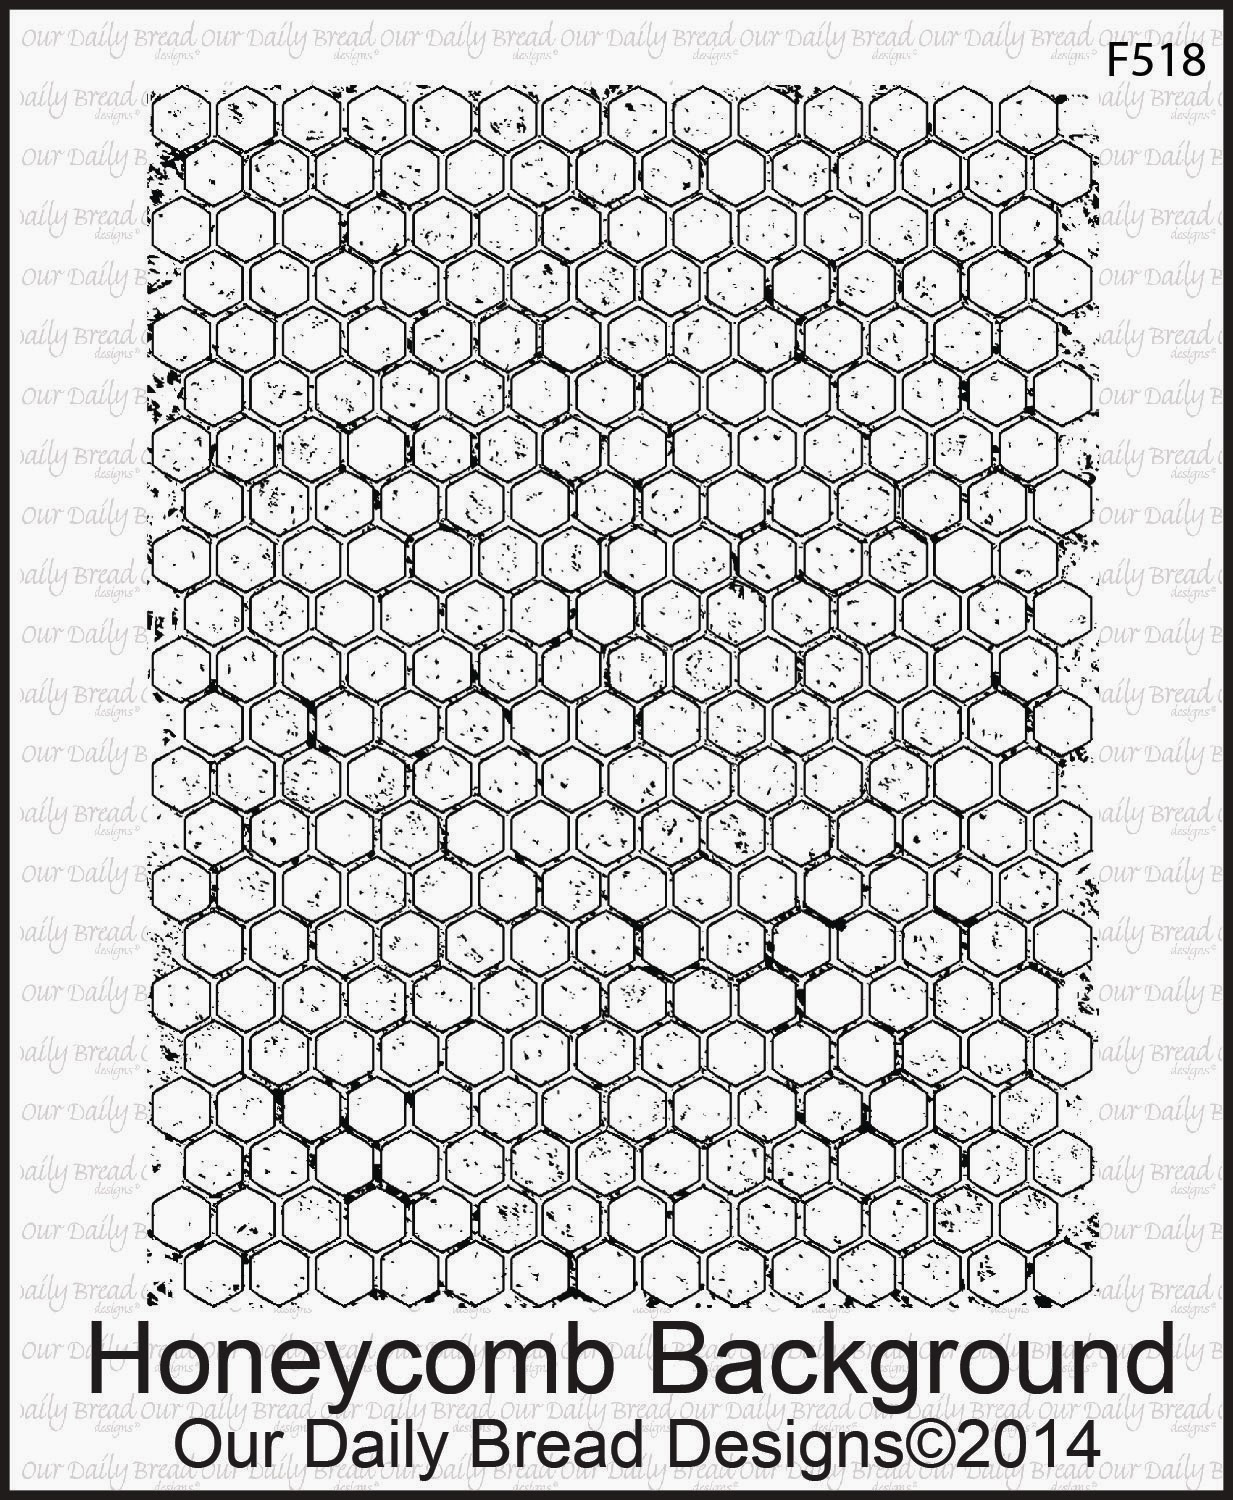 ODBD Honeycomb Background